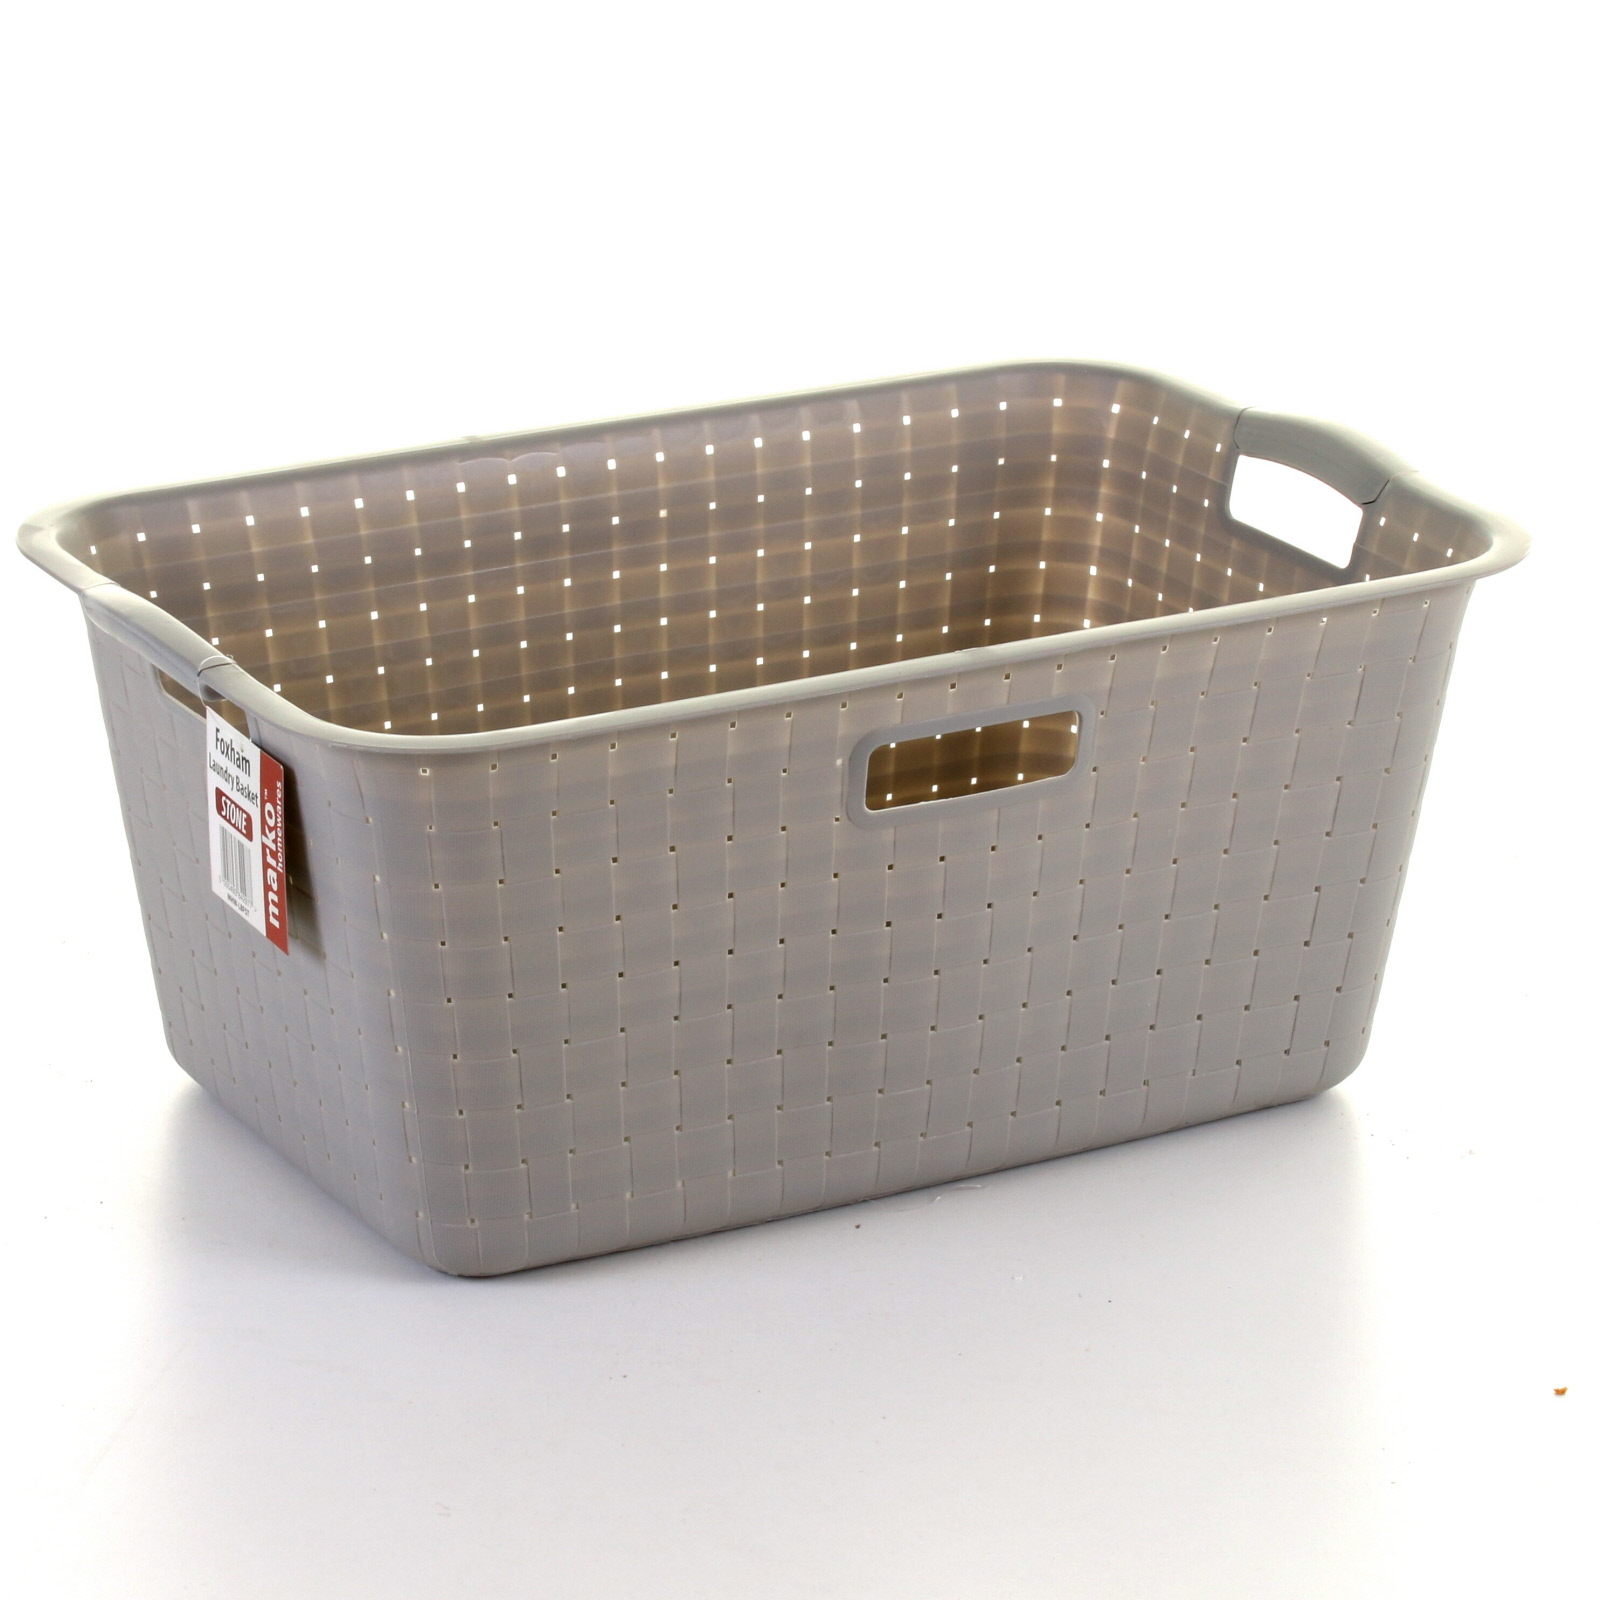 Plastic Laundry Basket Large Washing Clothes Hamper Storage Bin Rattan Style